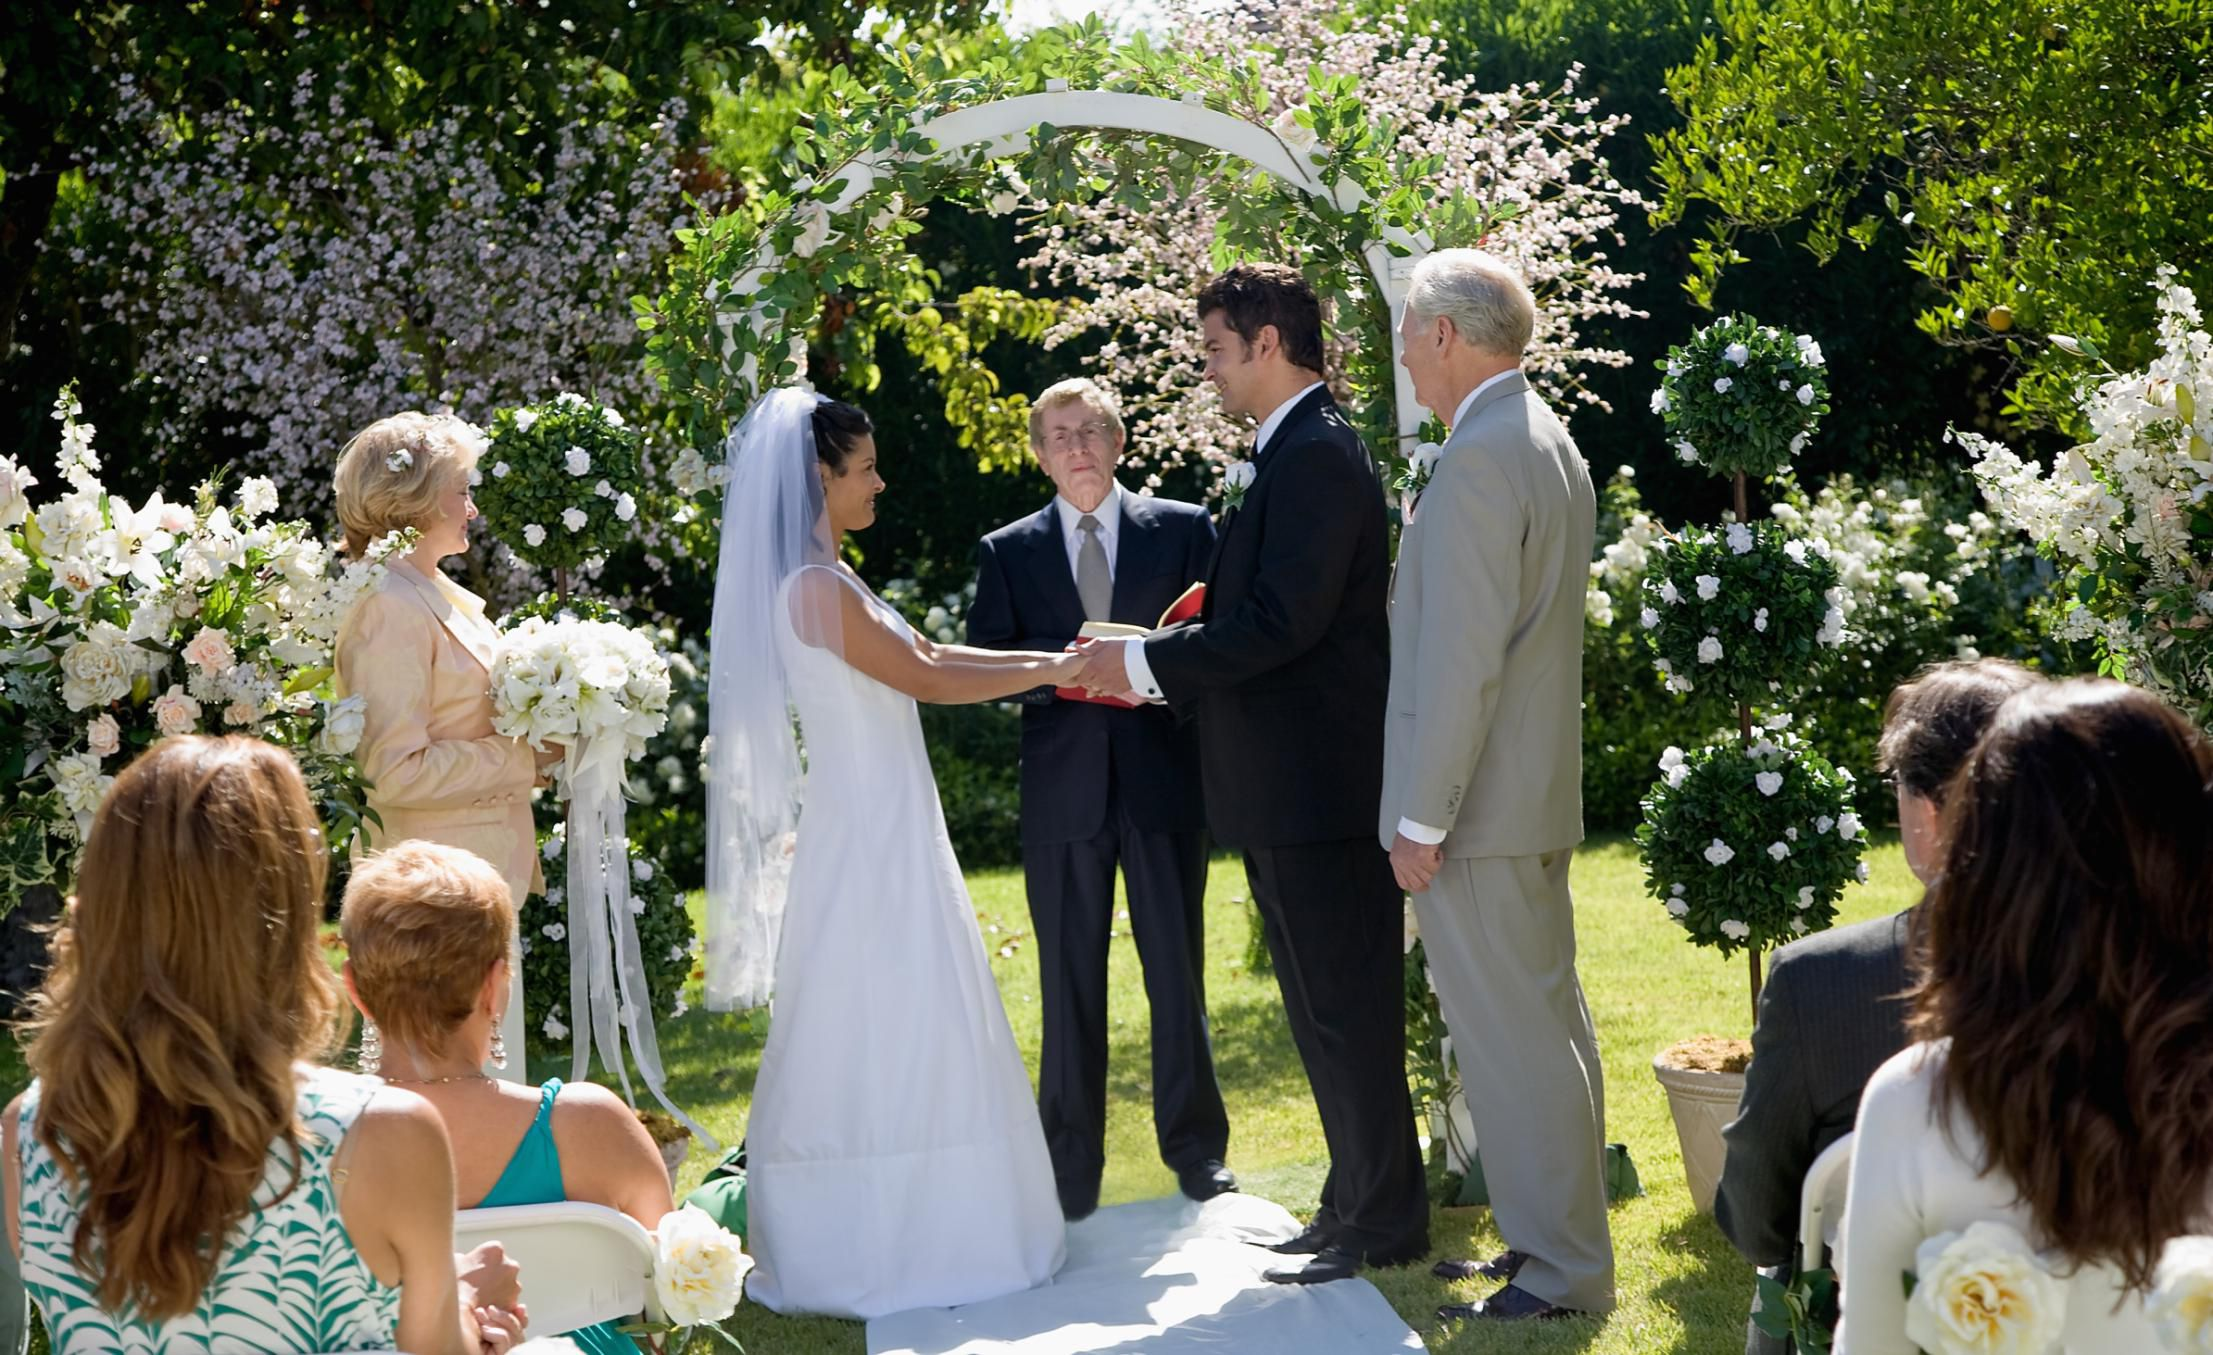 Romantic Wedding Vows For Your Ceremony